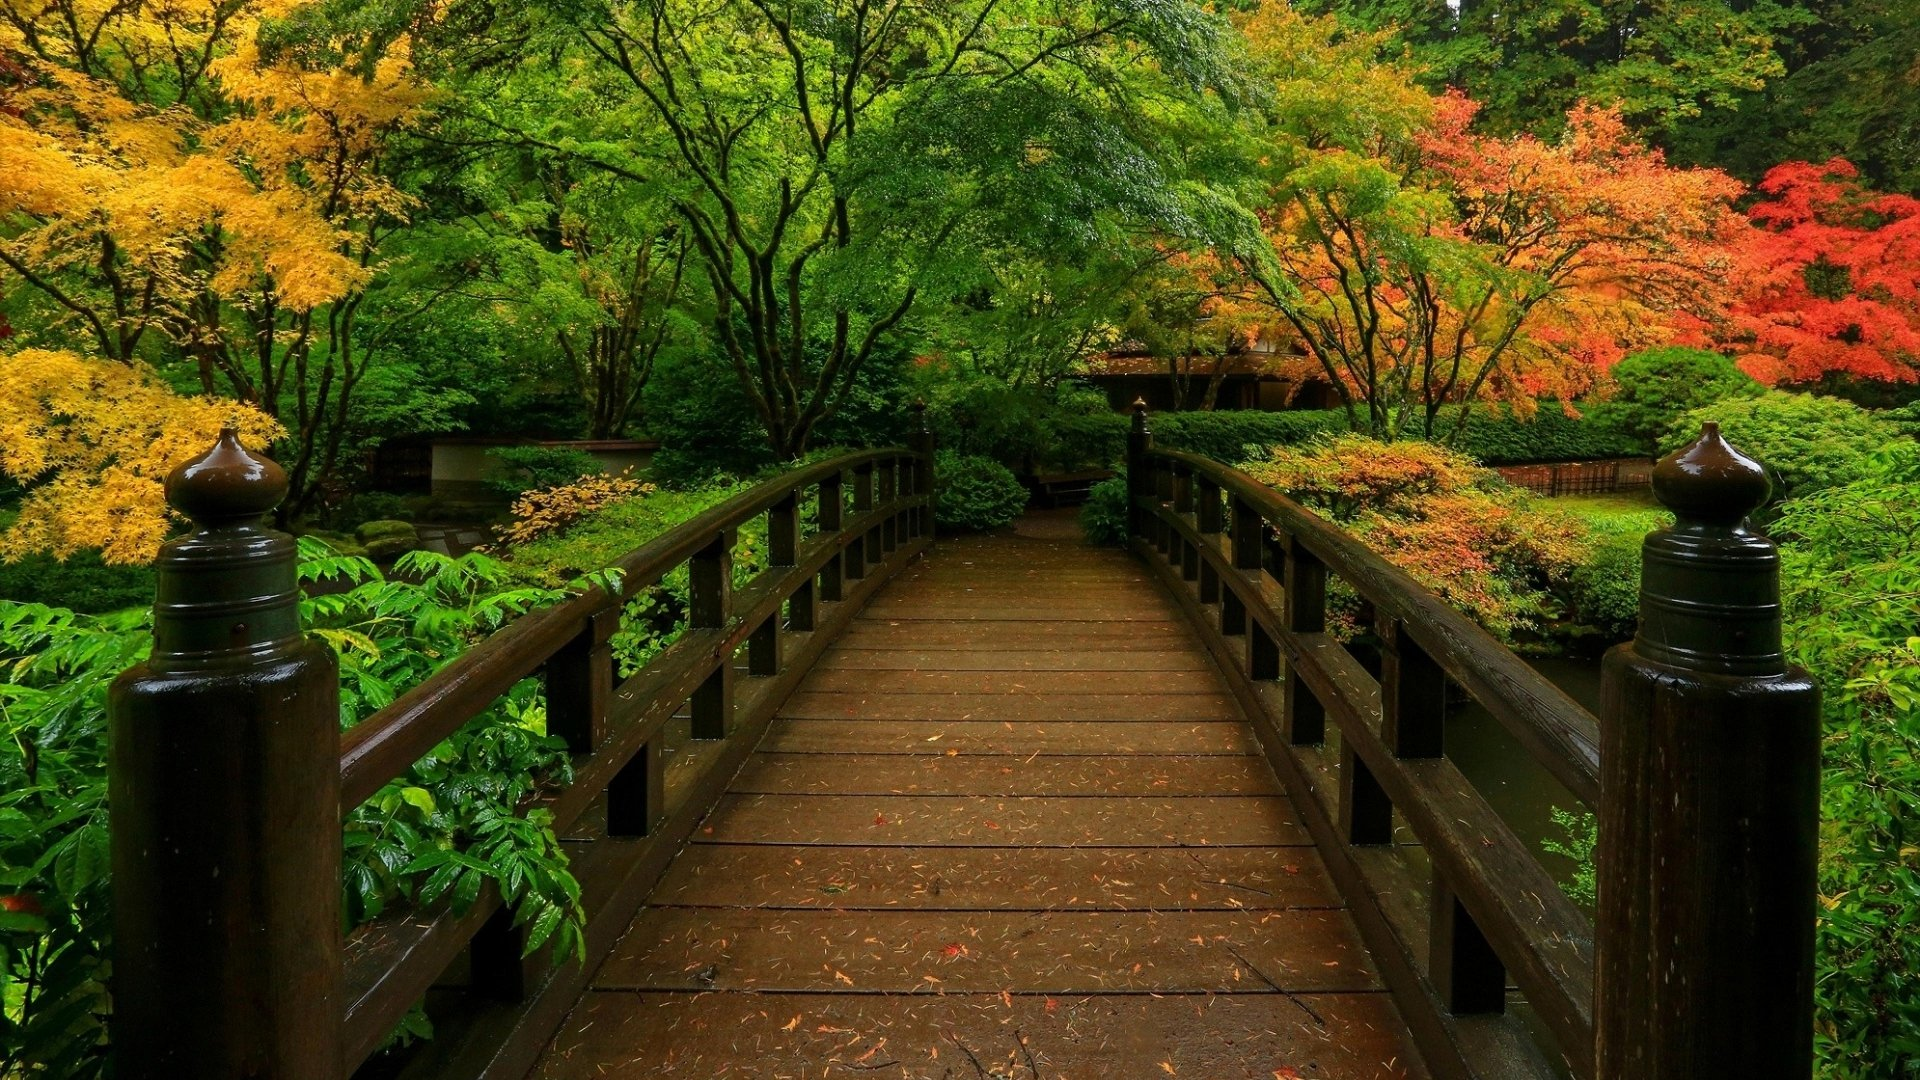 Japanese Garden Wallpapers: Bridge In Japanese Garden HD Wallpaper